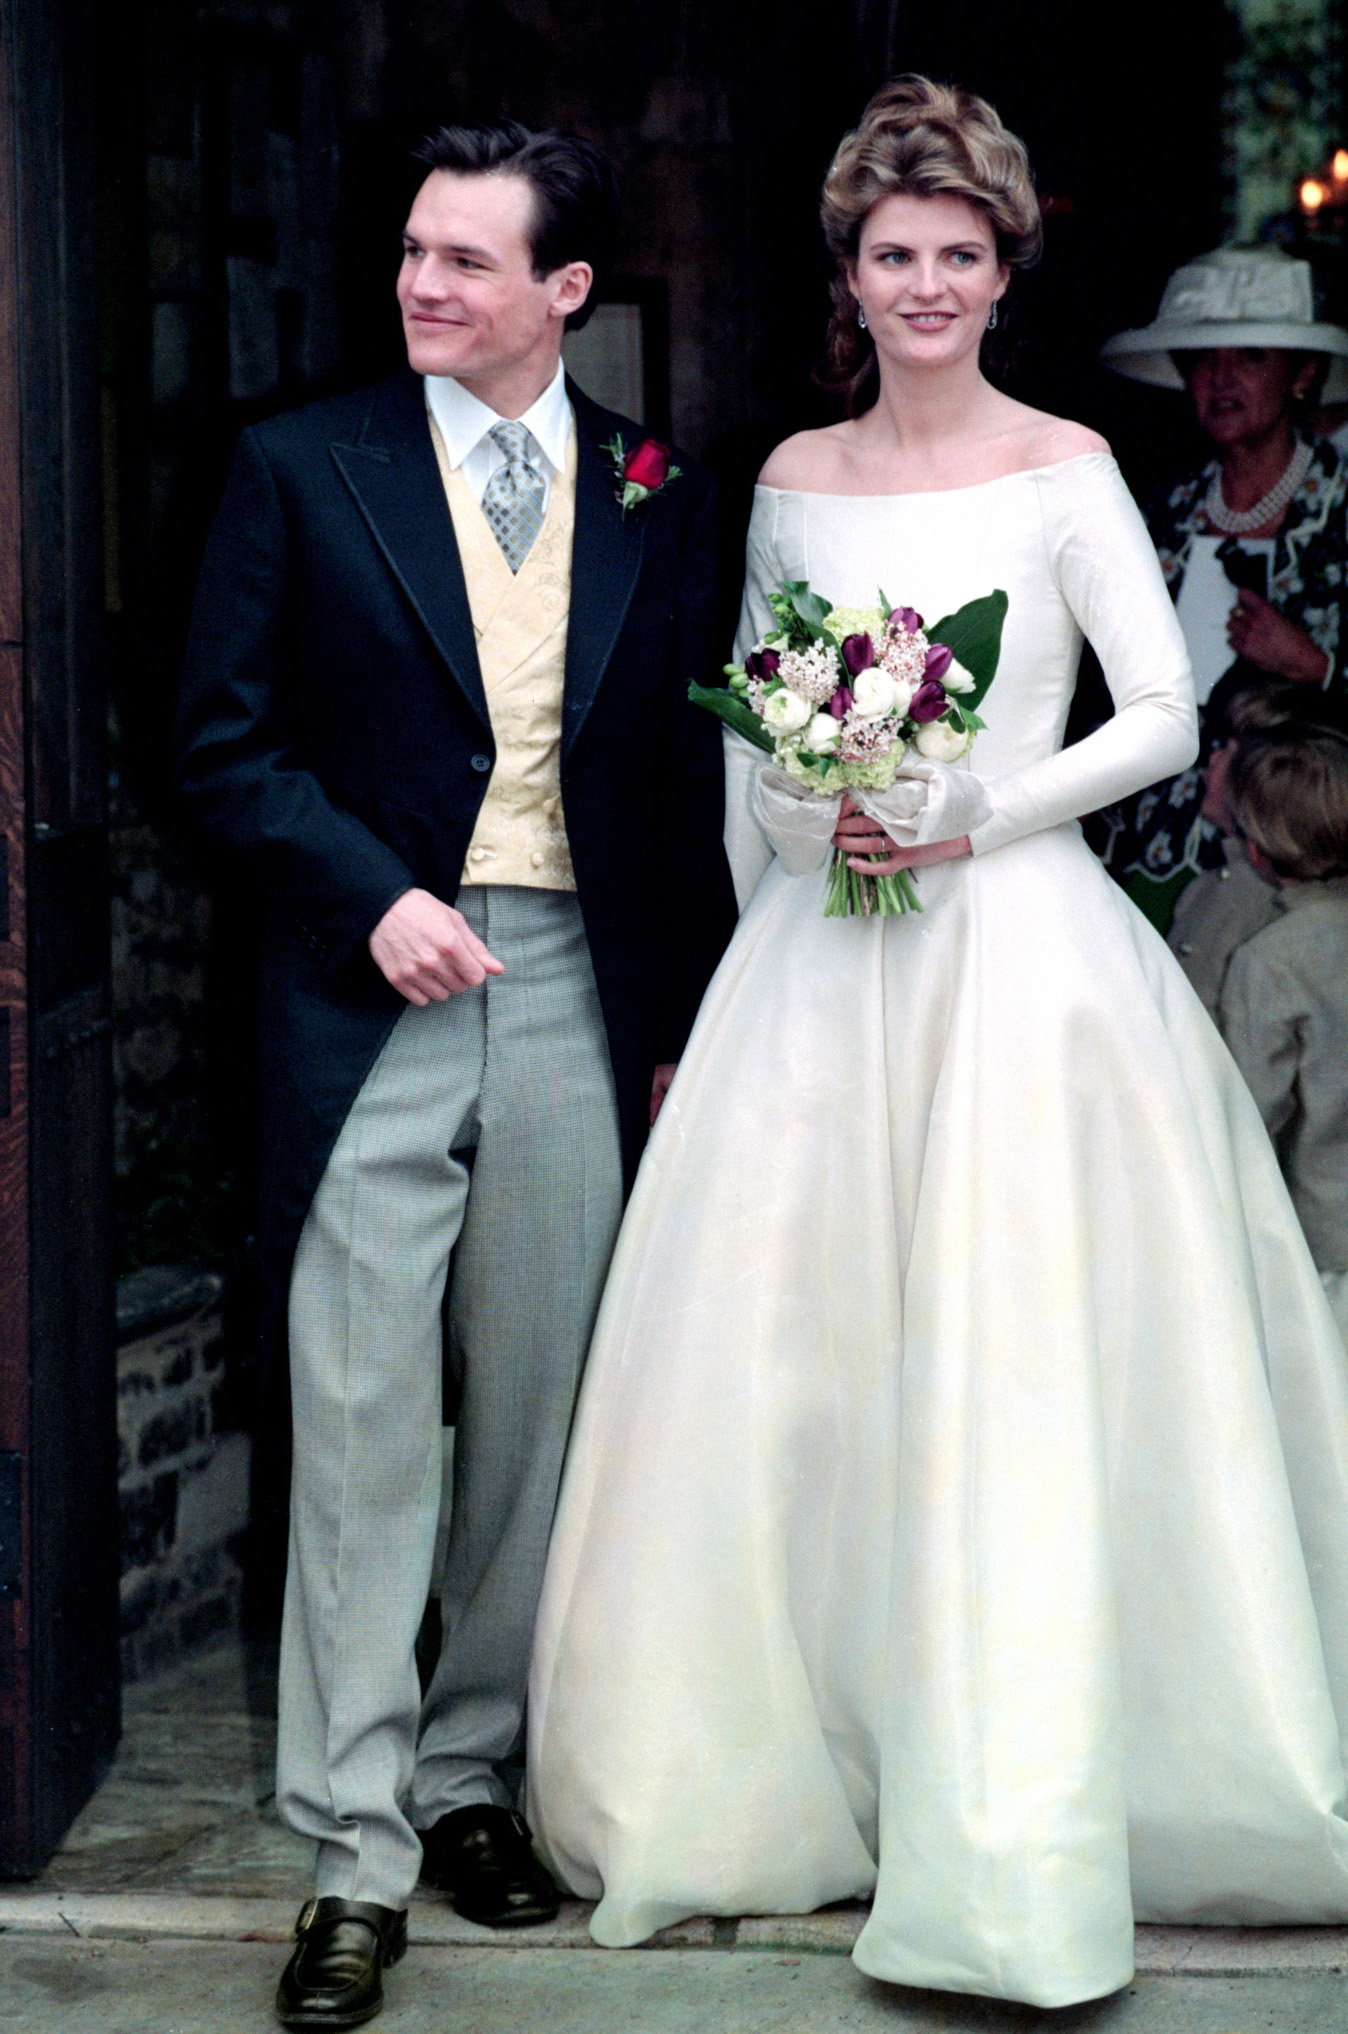 Sten Bertelsen and Susannah Constantine at their wedding in 1995. (PA/Photo Archive)